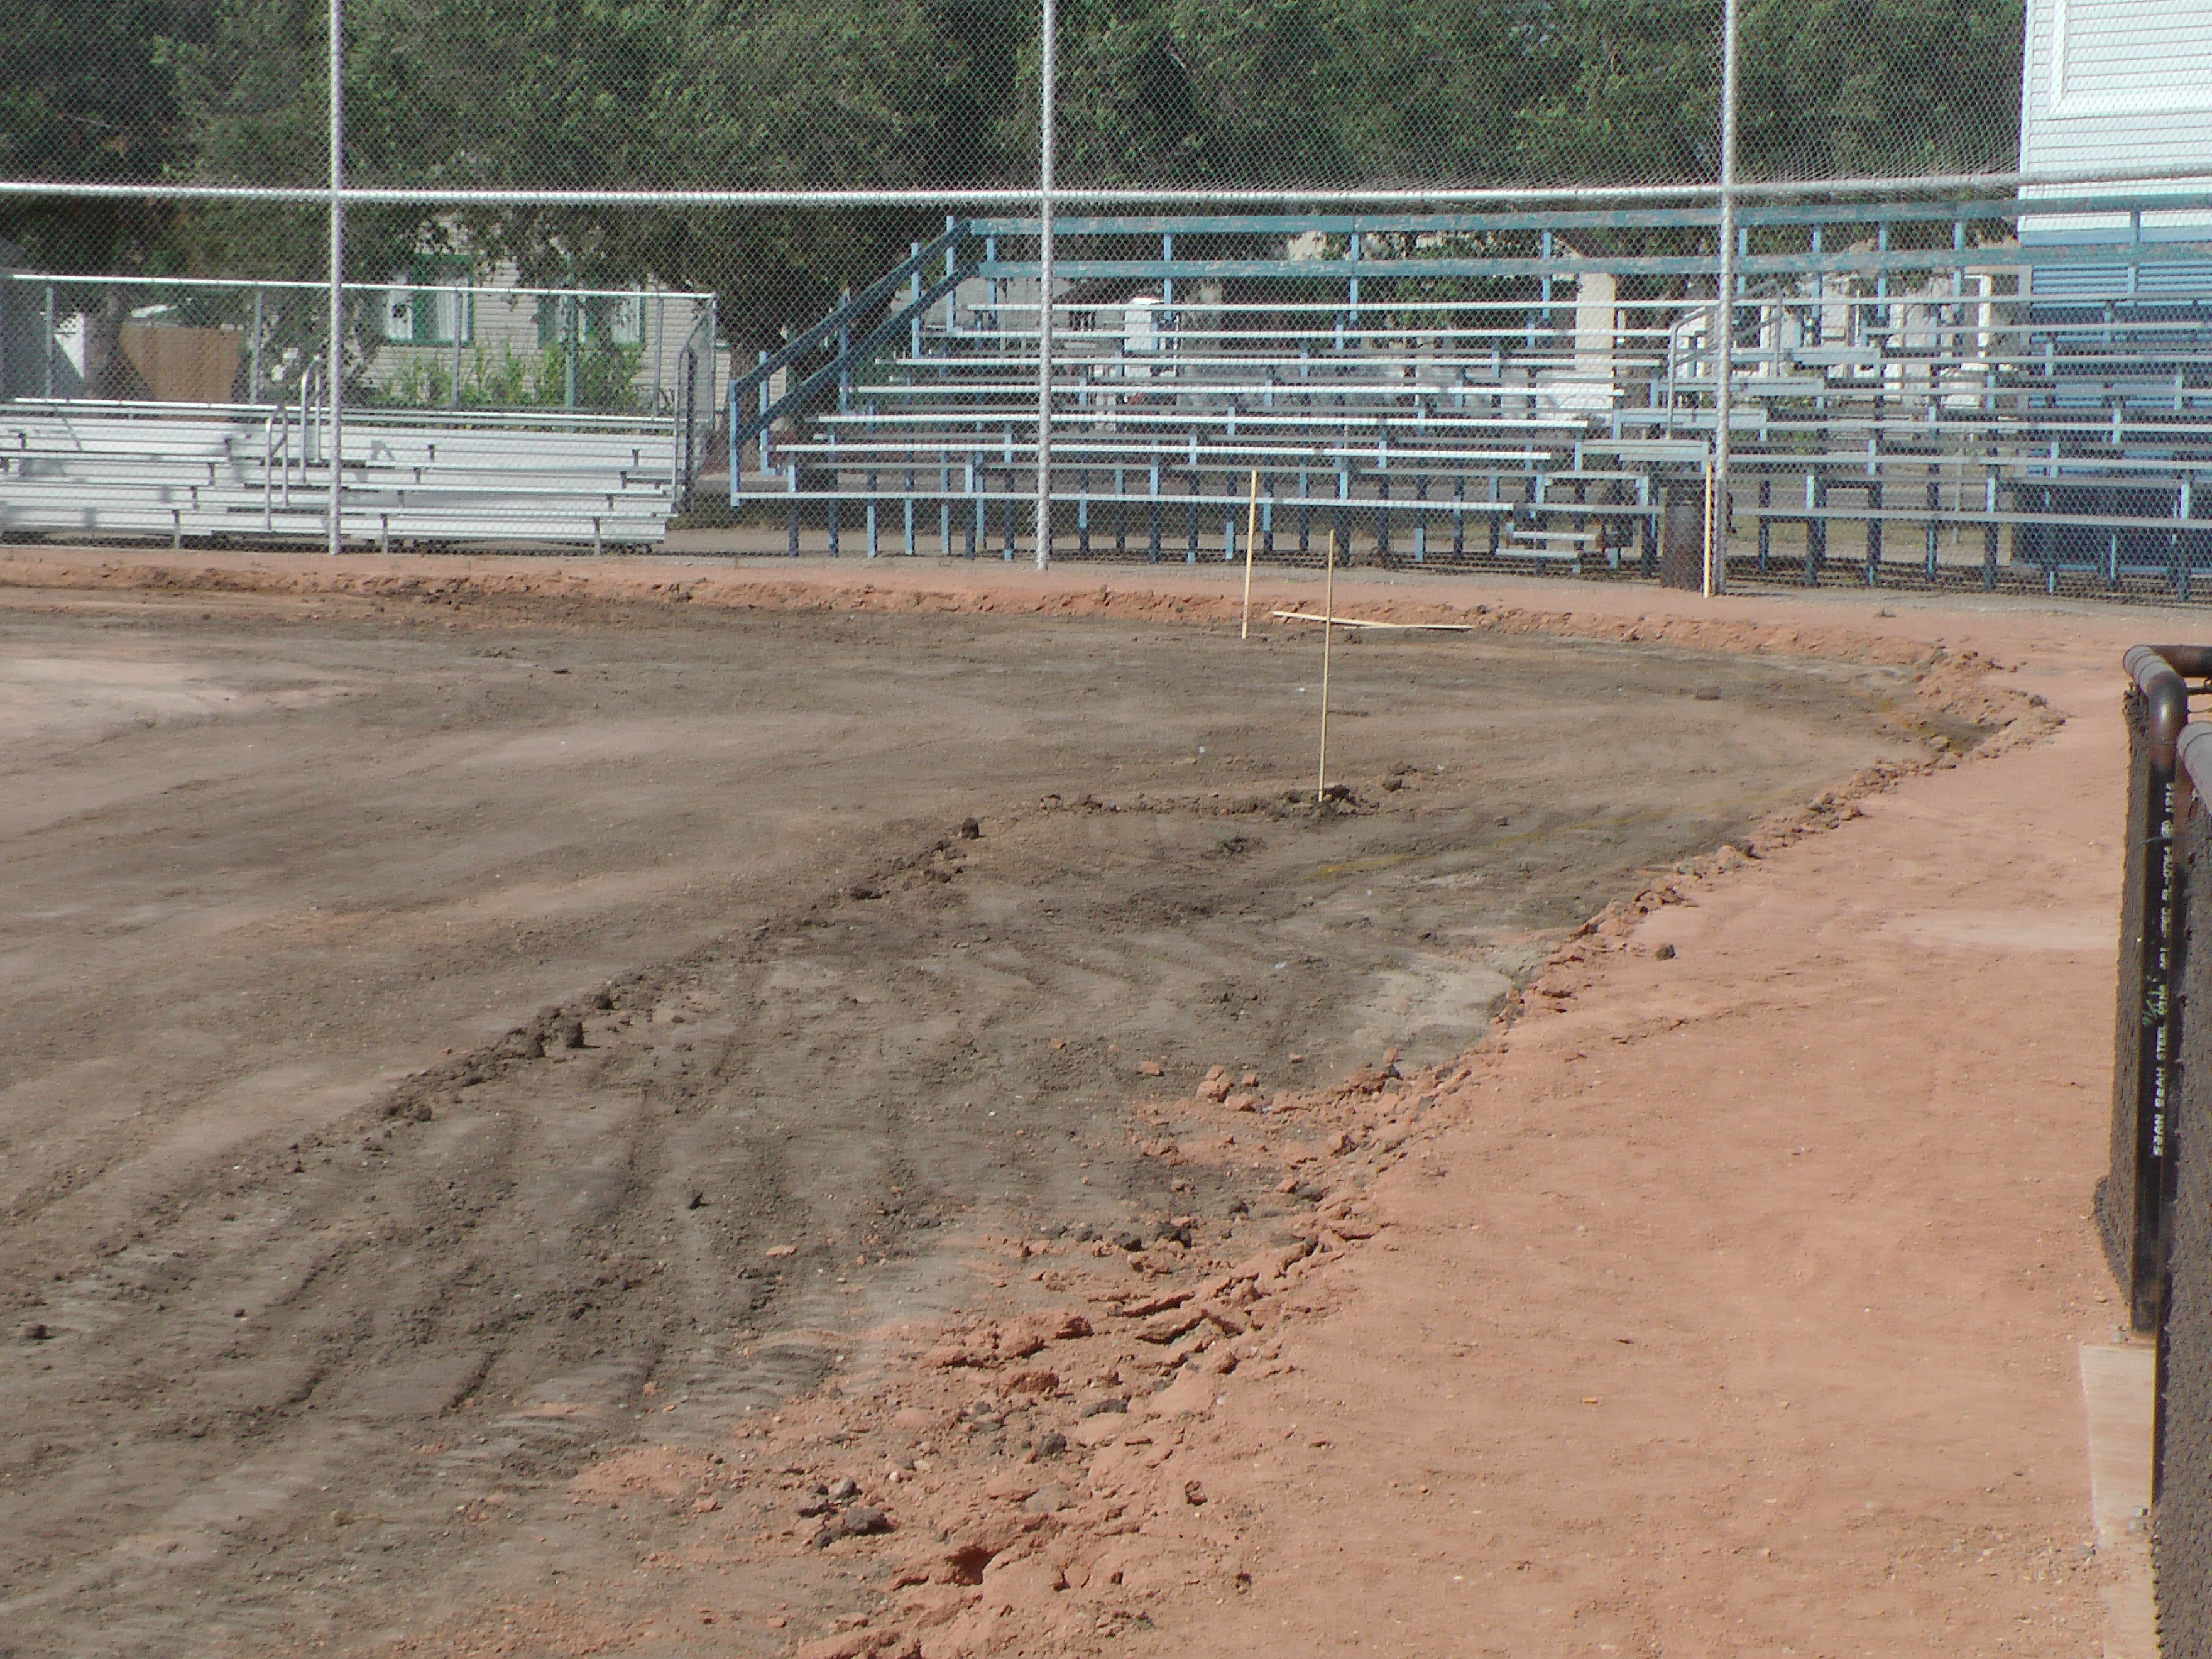 Aug 22 Optimist Park Field Renovations: New Top Soil Going In, after 45 dump trucks of dirt and grass removed! Pics and Video...check back for more!  - Image 5